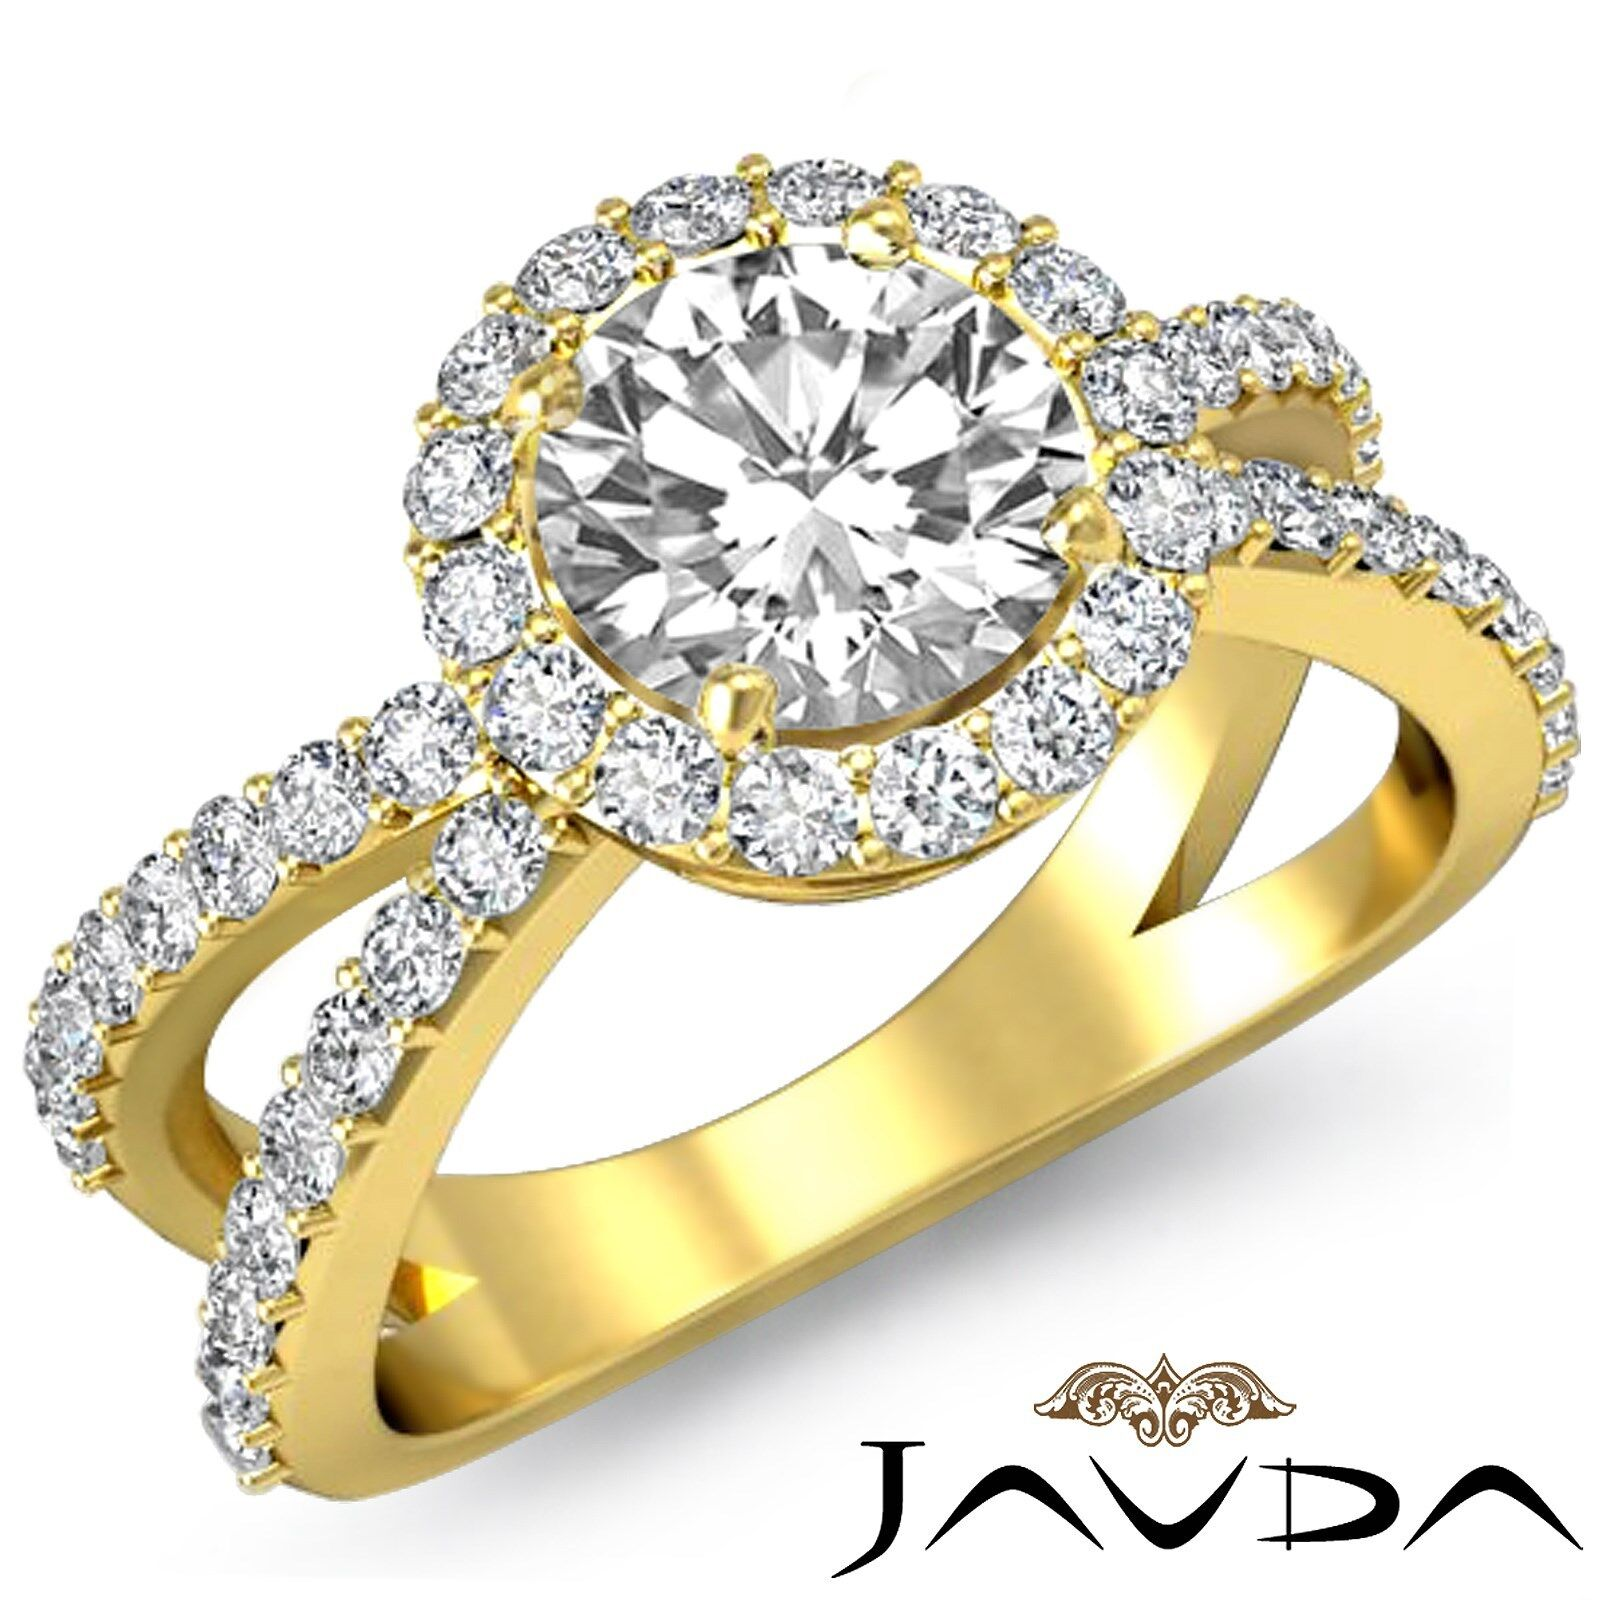 Halo Filigree Split Shank Round Diamond Engagement Pave Ring GIA F VS1 2.25 Ct